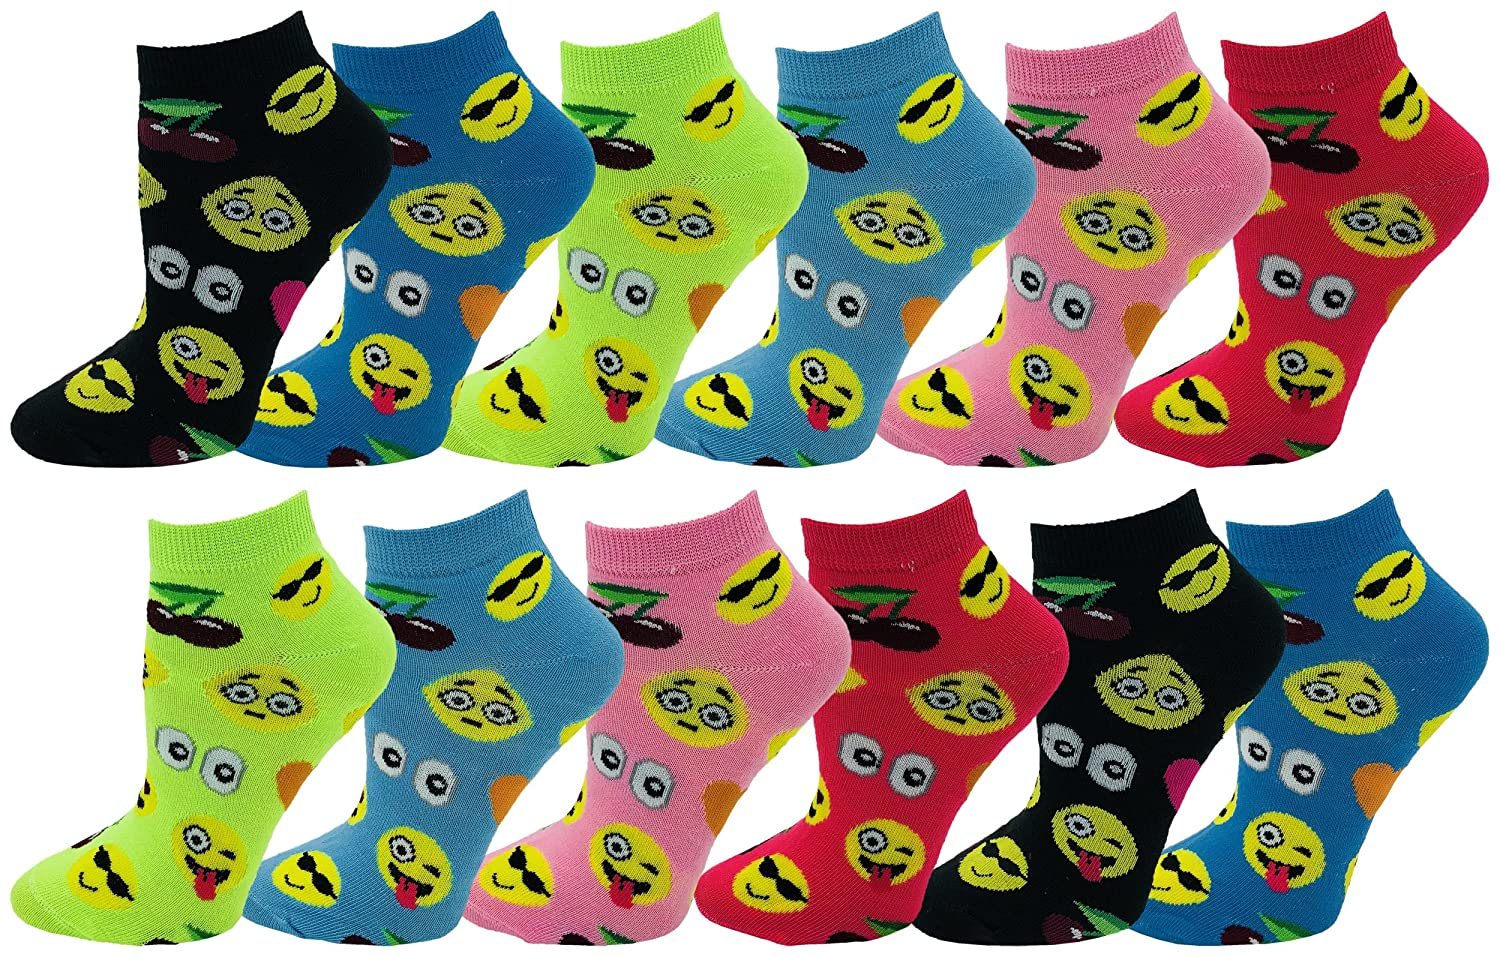 Emoji Socks, 12 Pairs, Womens or Girls, Fun Cute Crew or Ankle Sock, colorful Smiley Emoticon Design, Soft Novelty Bulk Pack